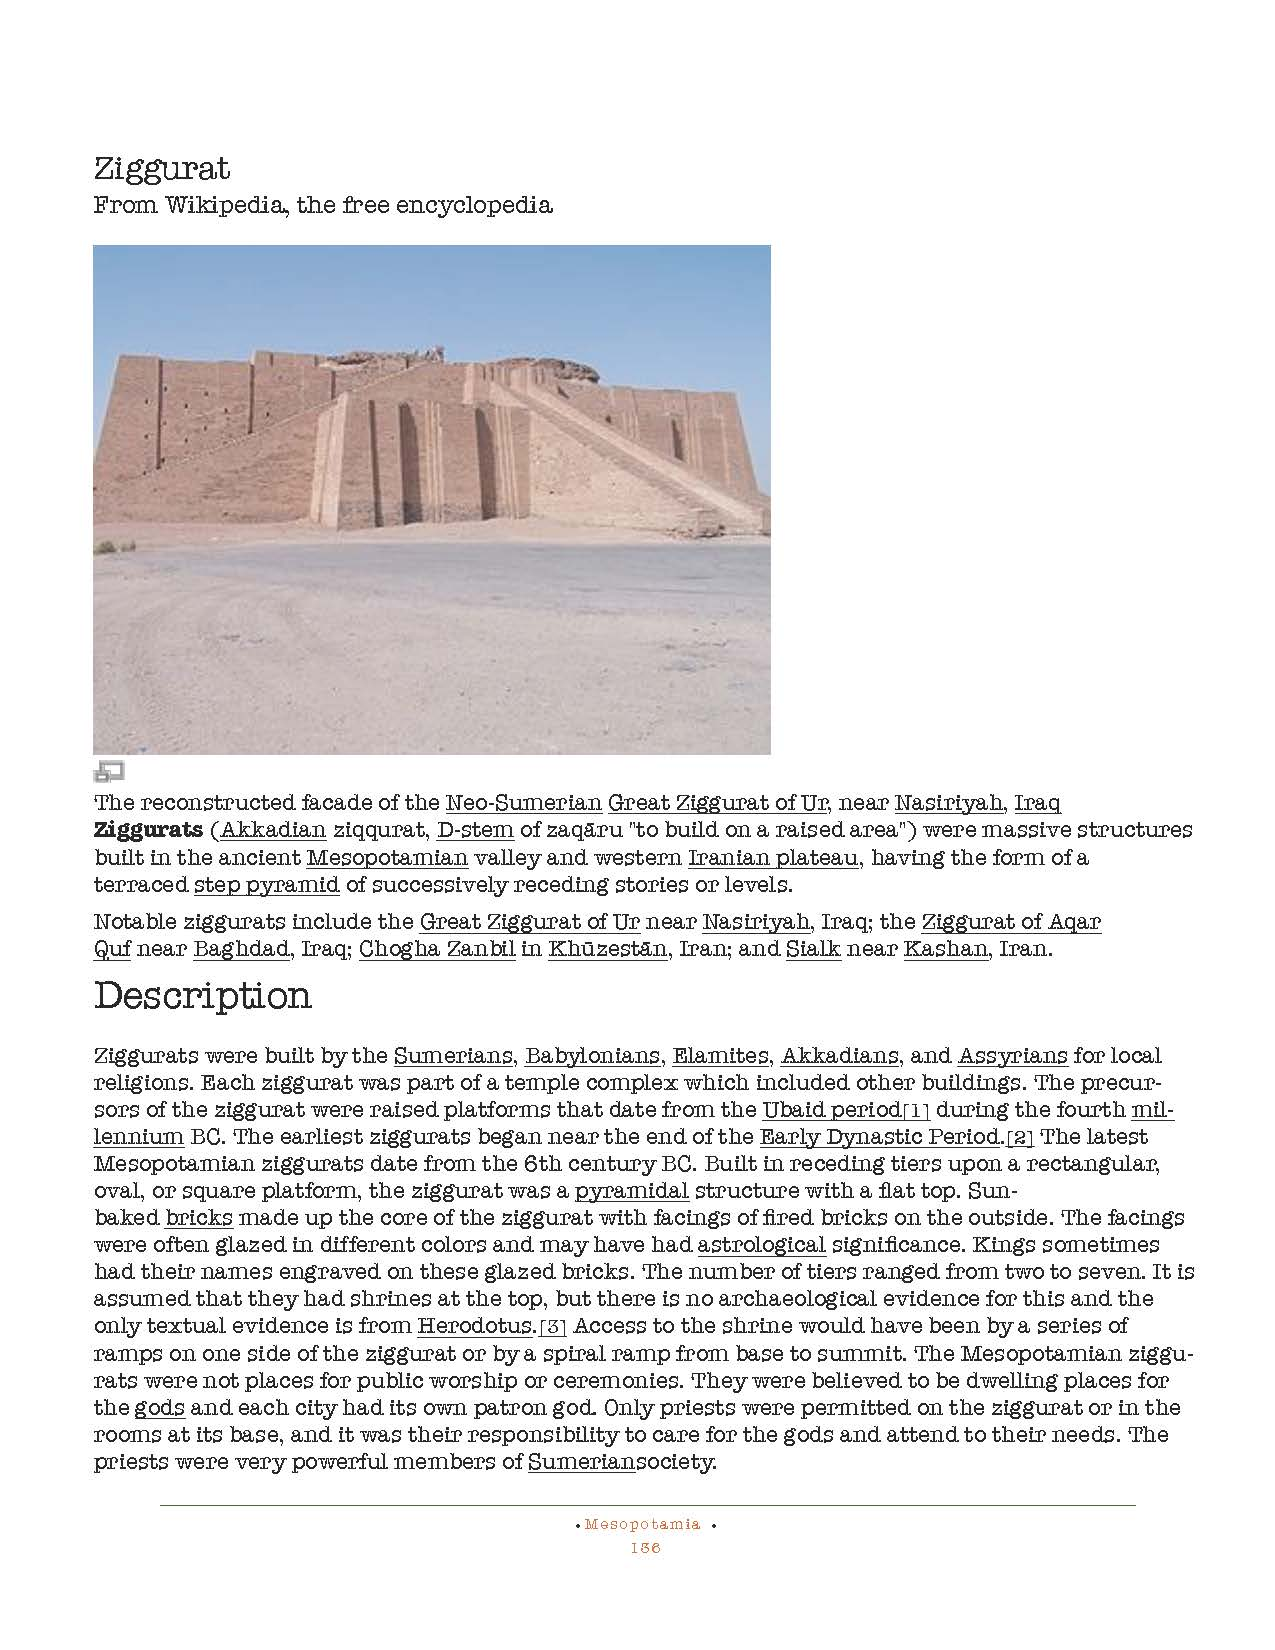 HOCE- Fertile Crescent Notes_Page_136.jpg